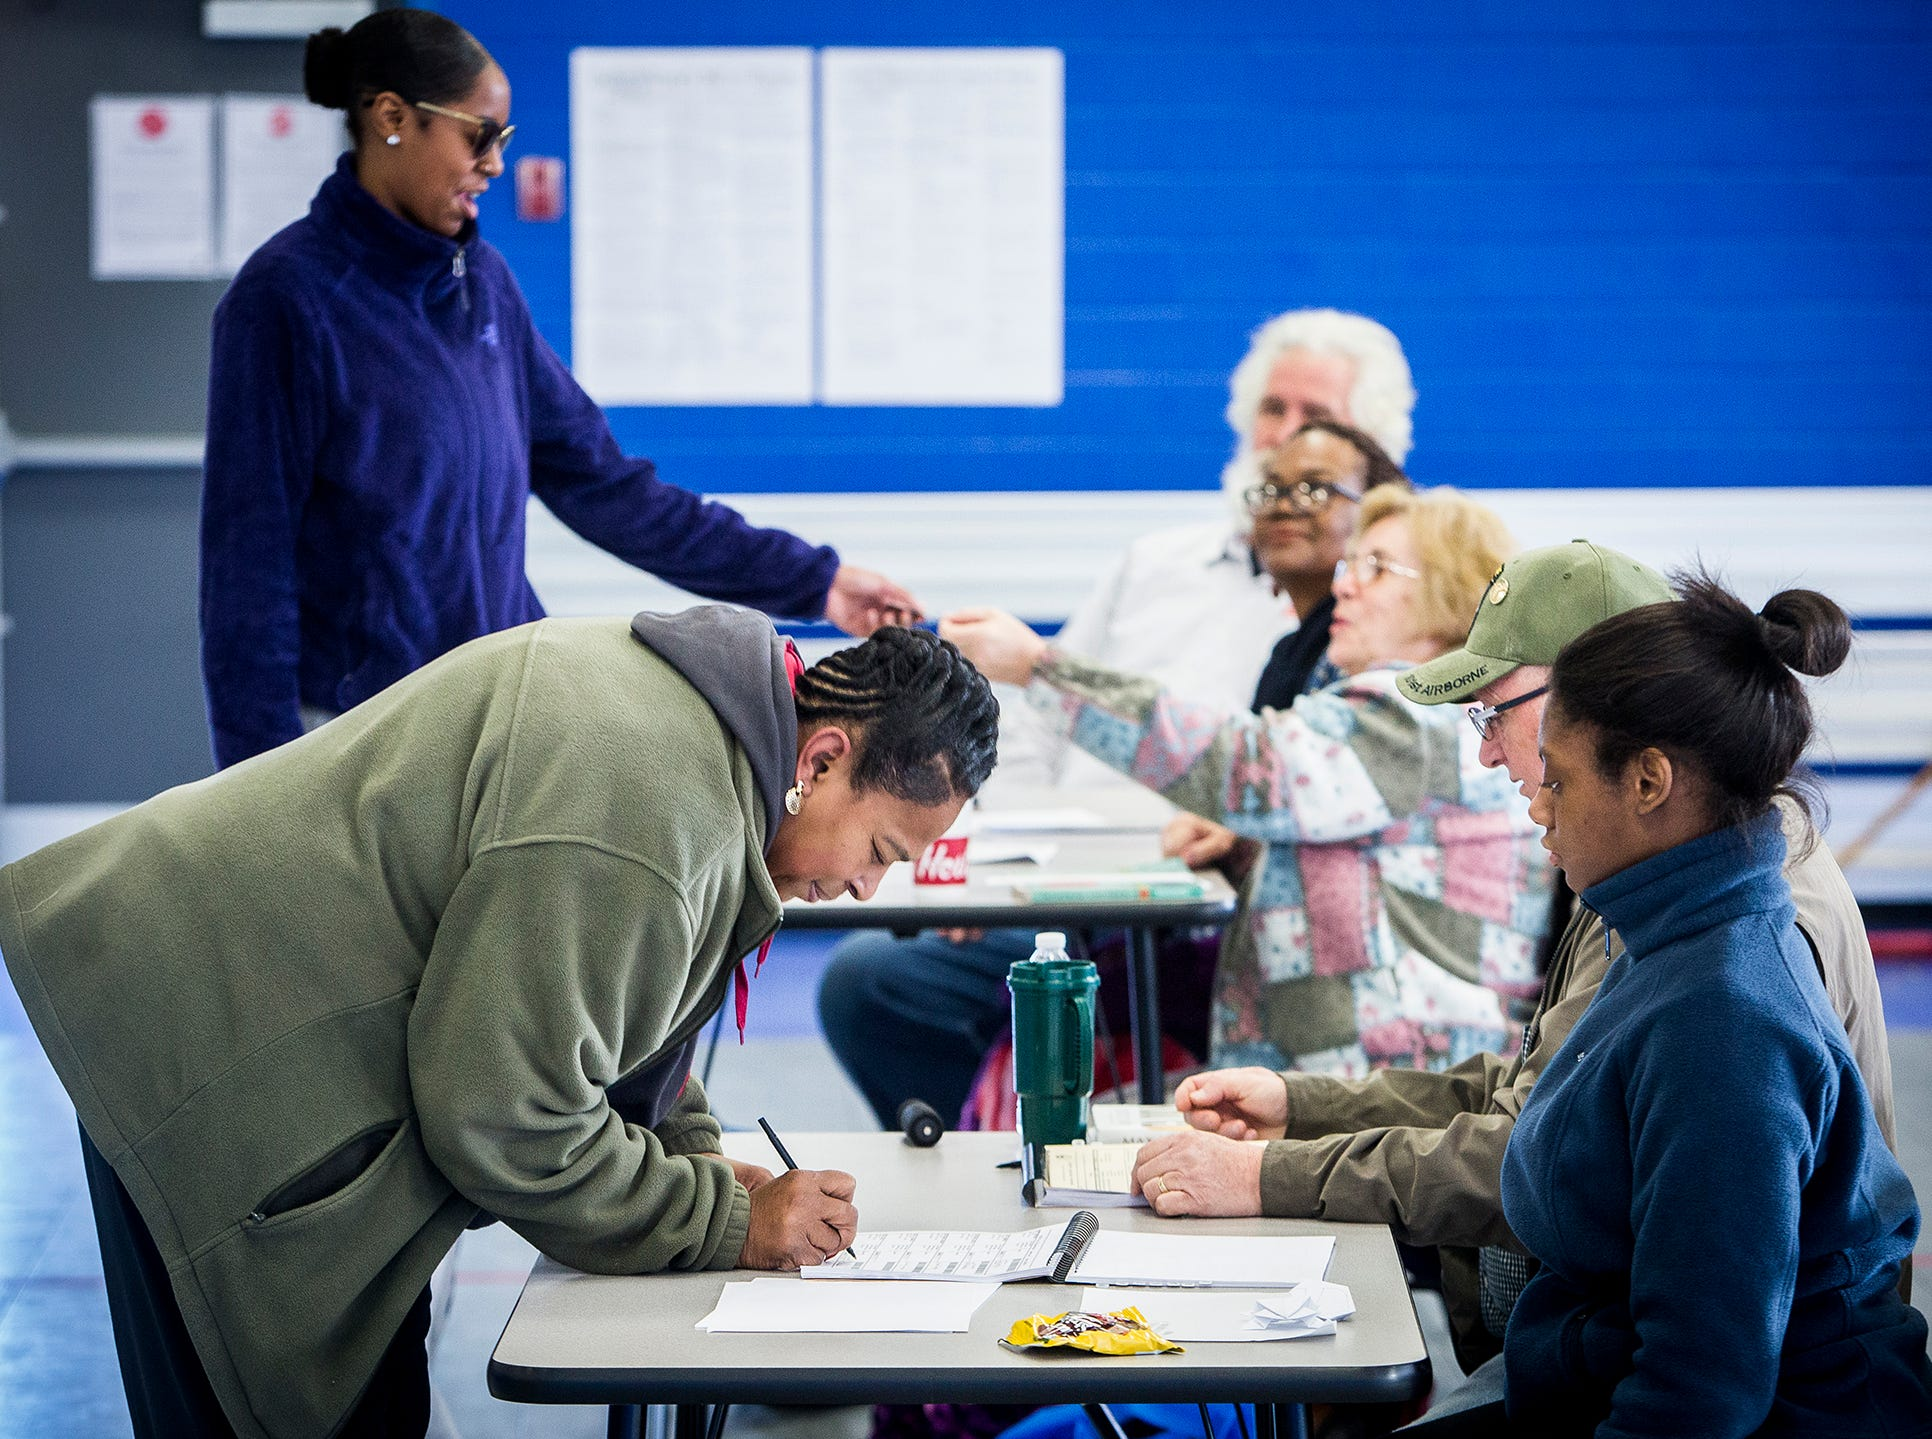 Voters from Precinct 19 cast their ballots at the Muncie Boys and Girls Club Tuesday.